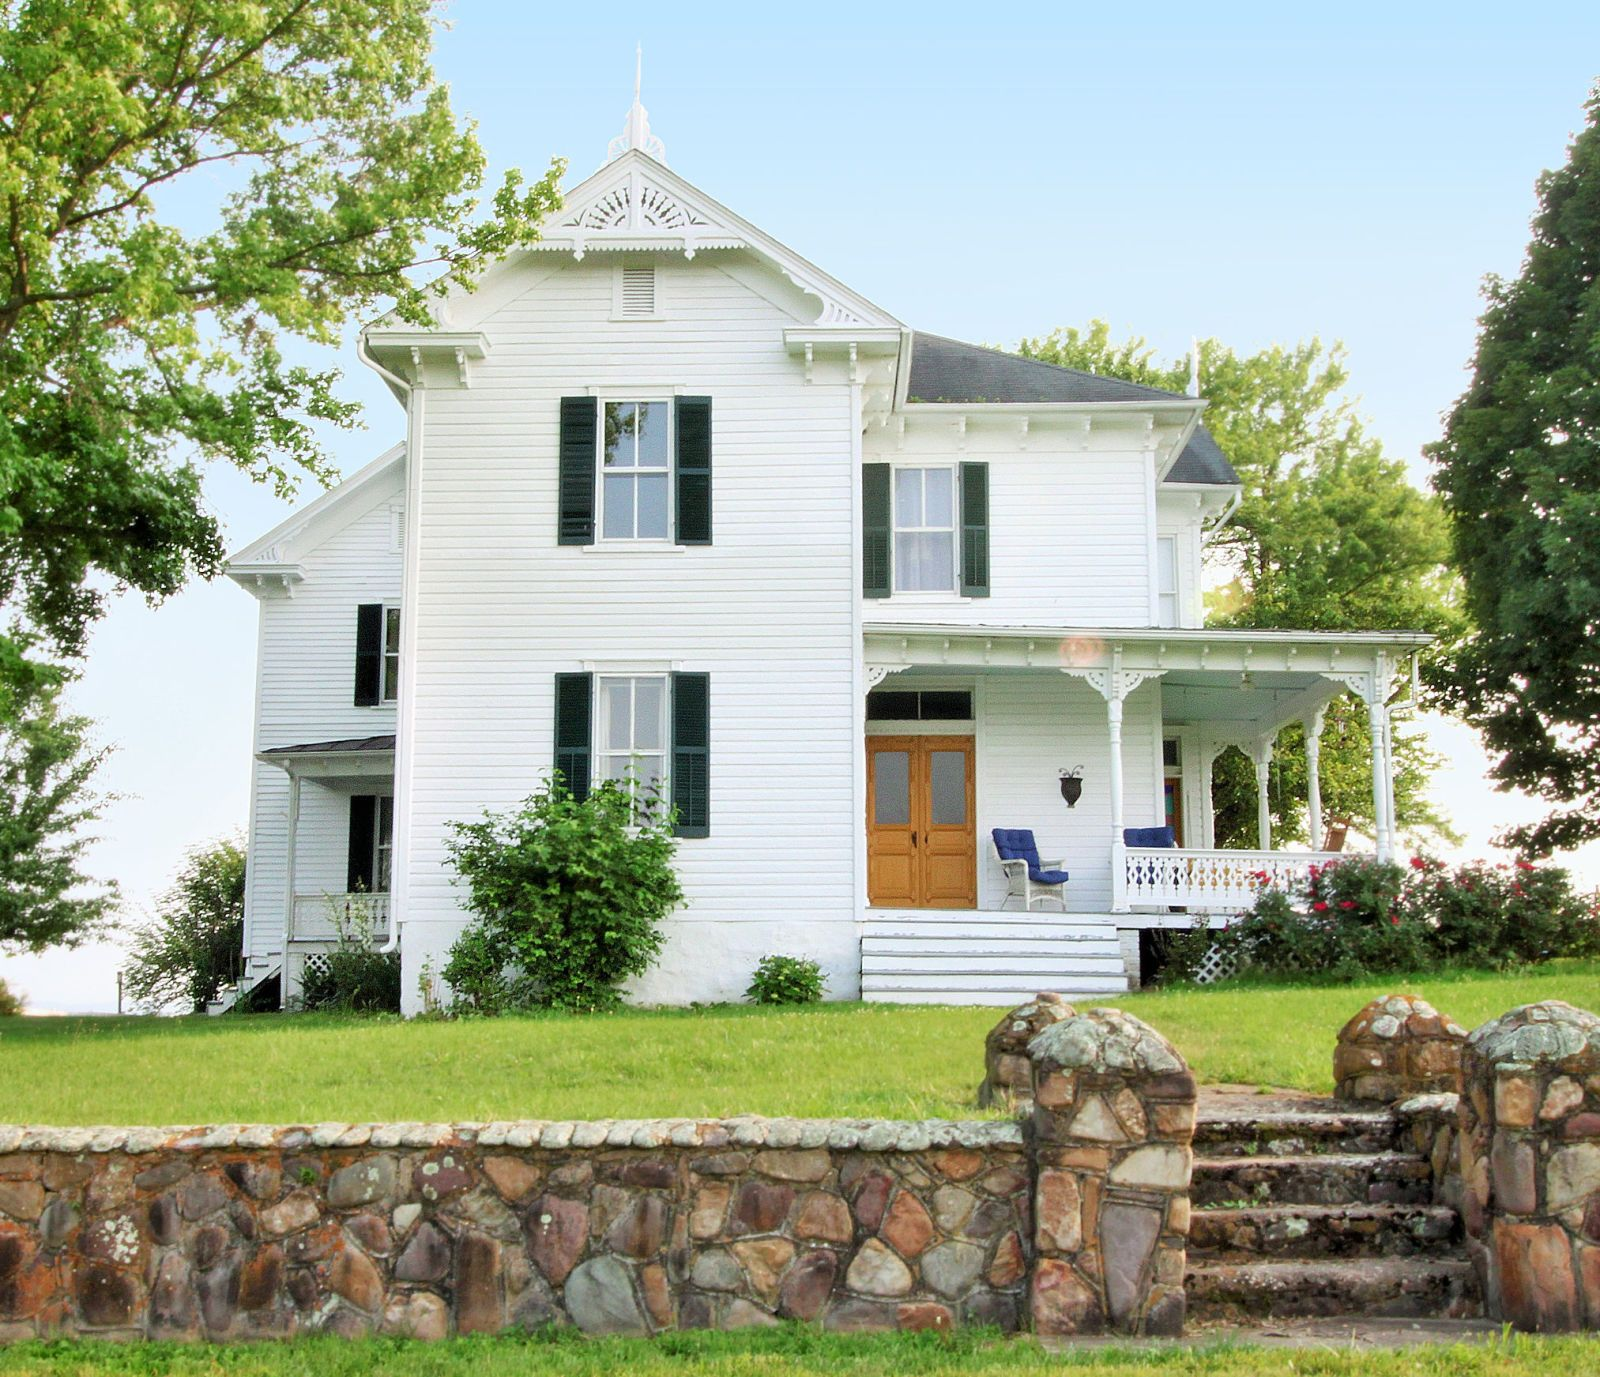 7 White Farmhouses That Will Convince You to Pack Up And